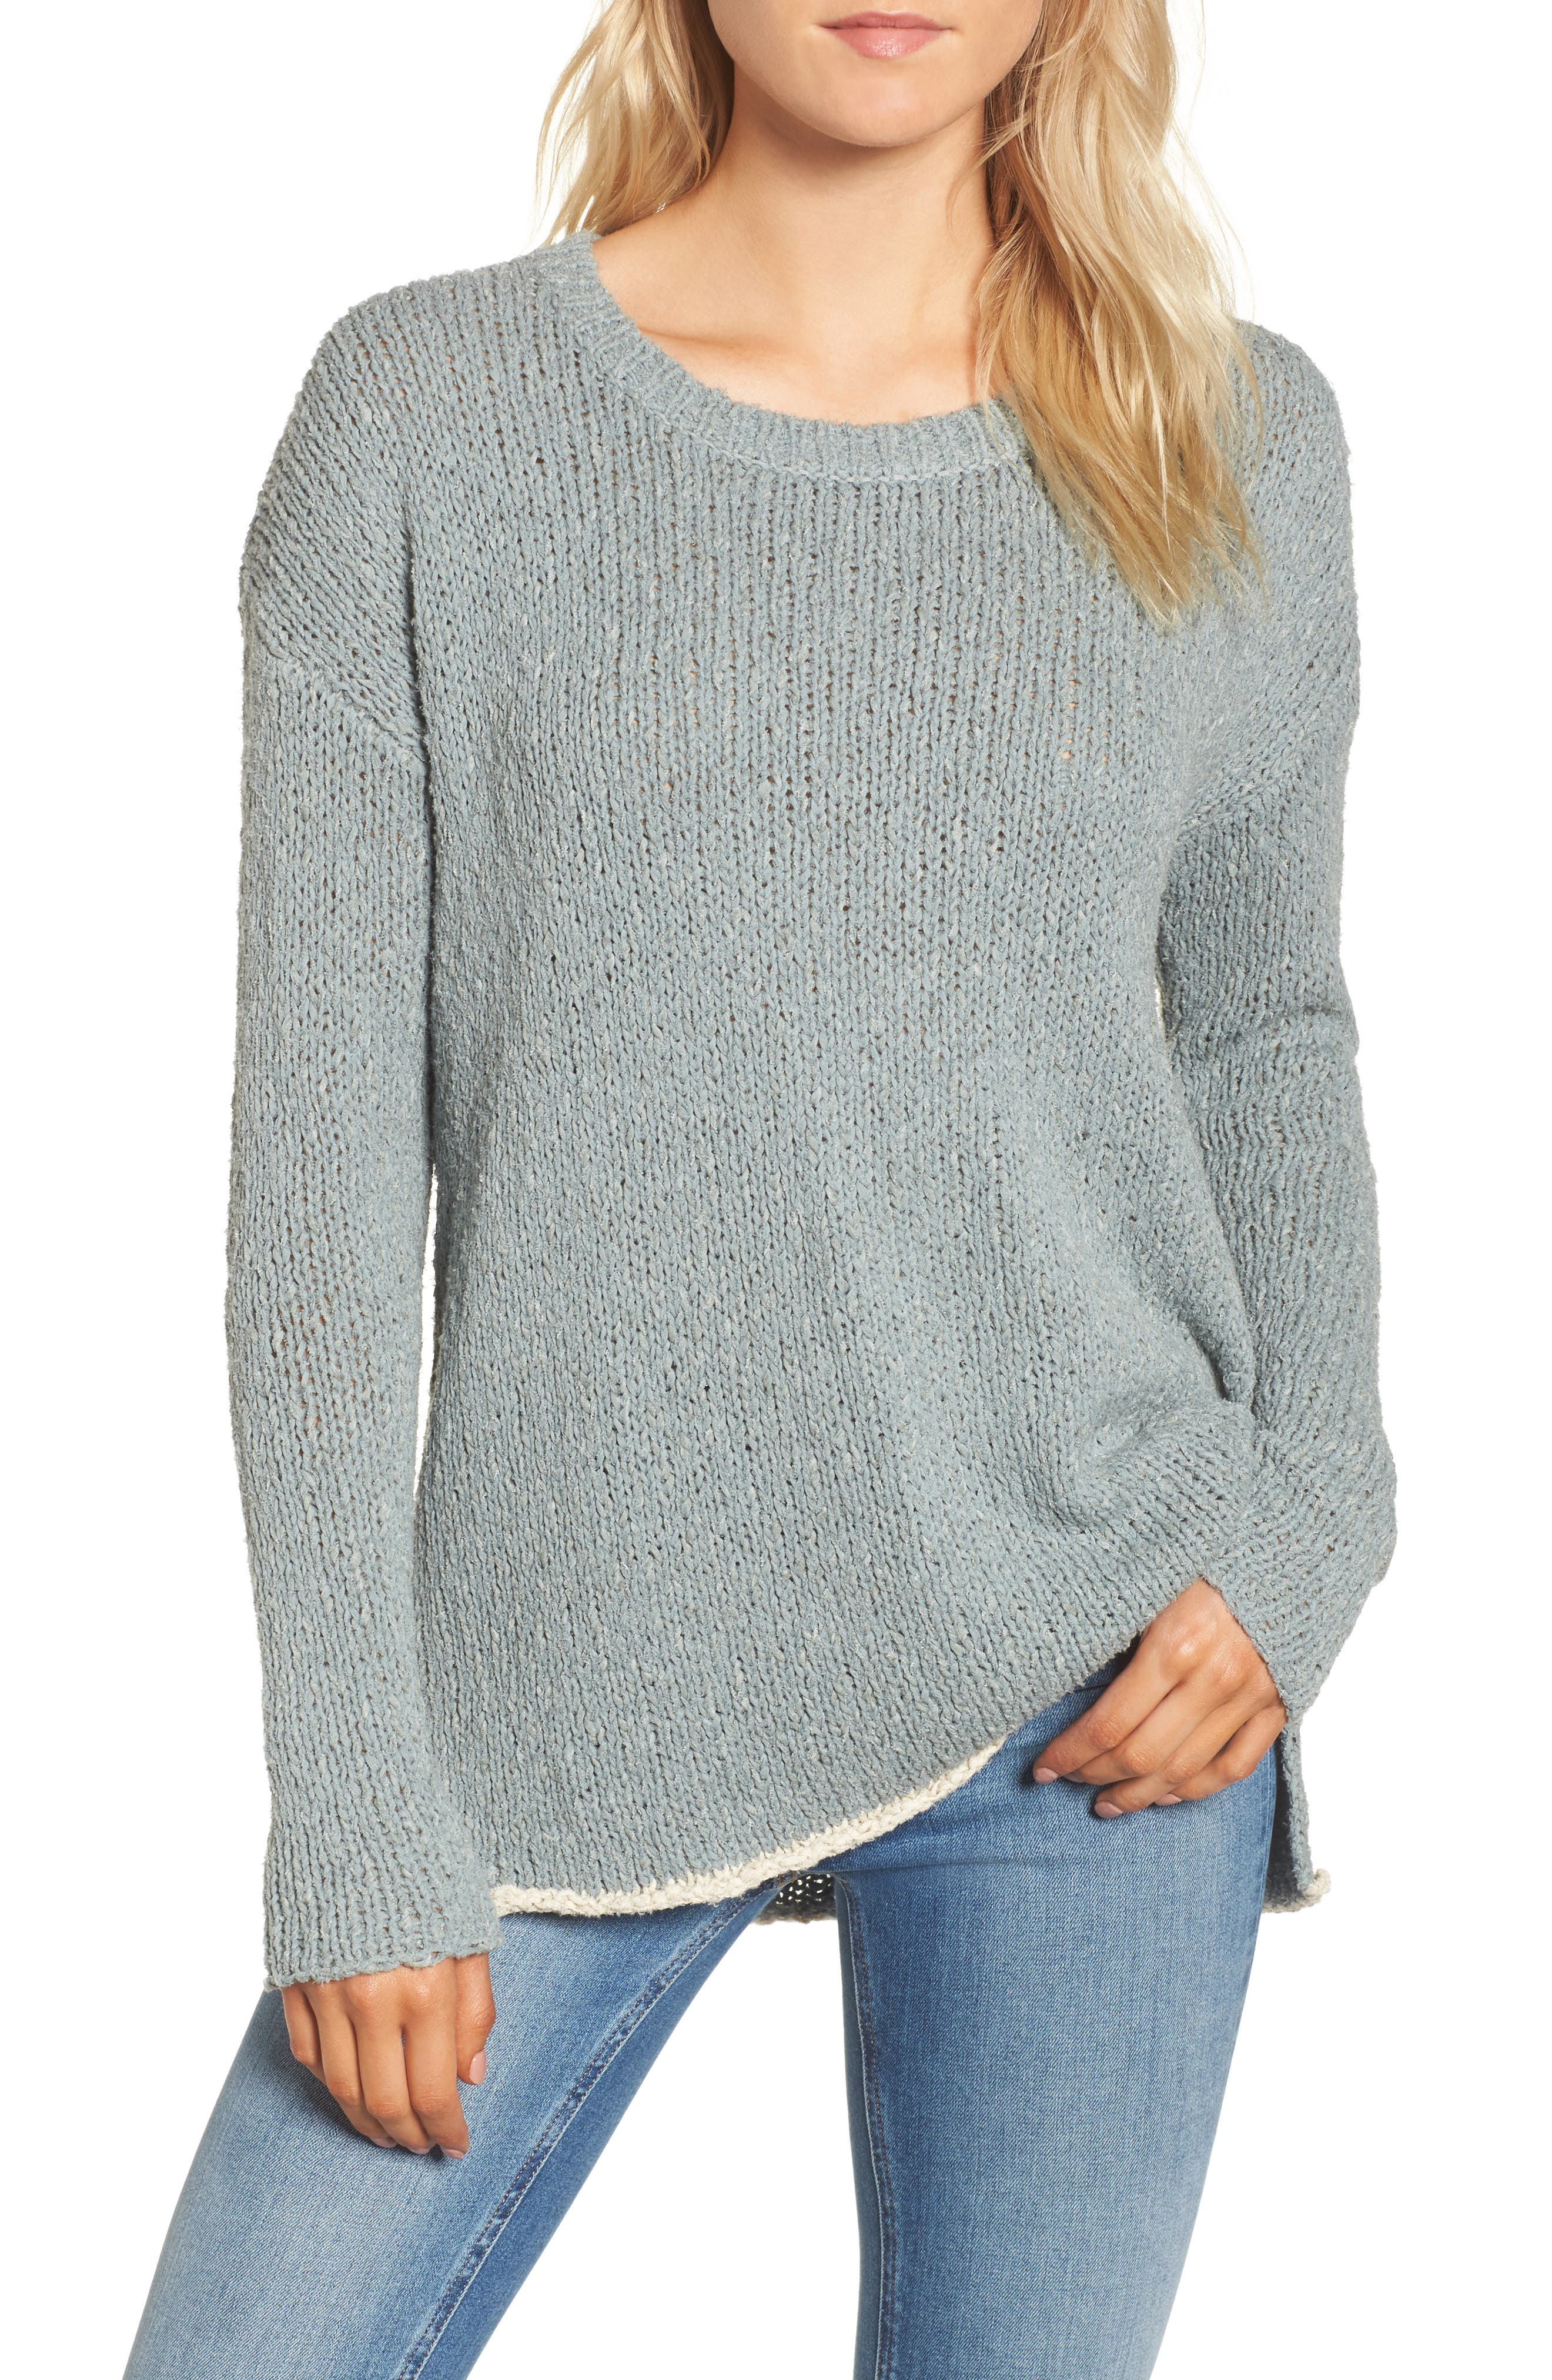 James Perse Oversize Sweater